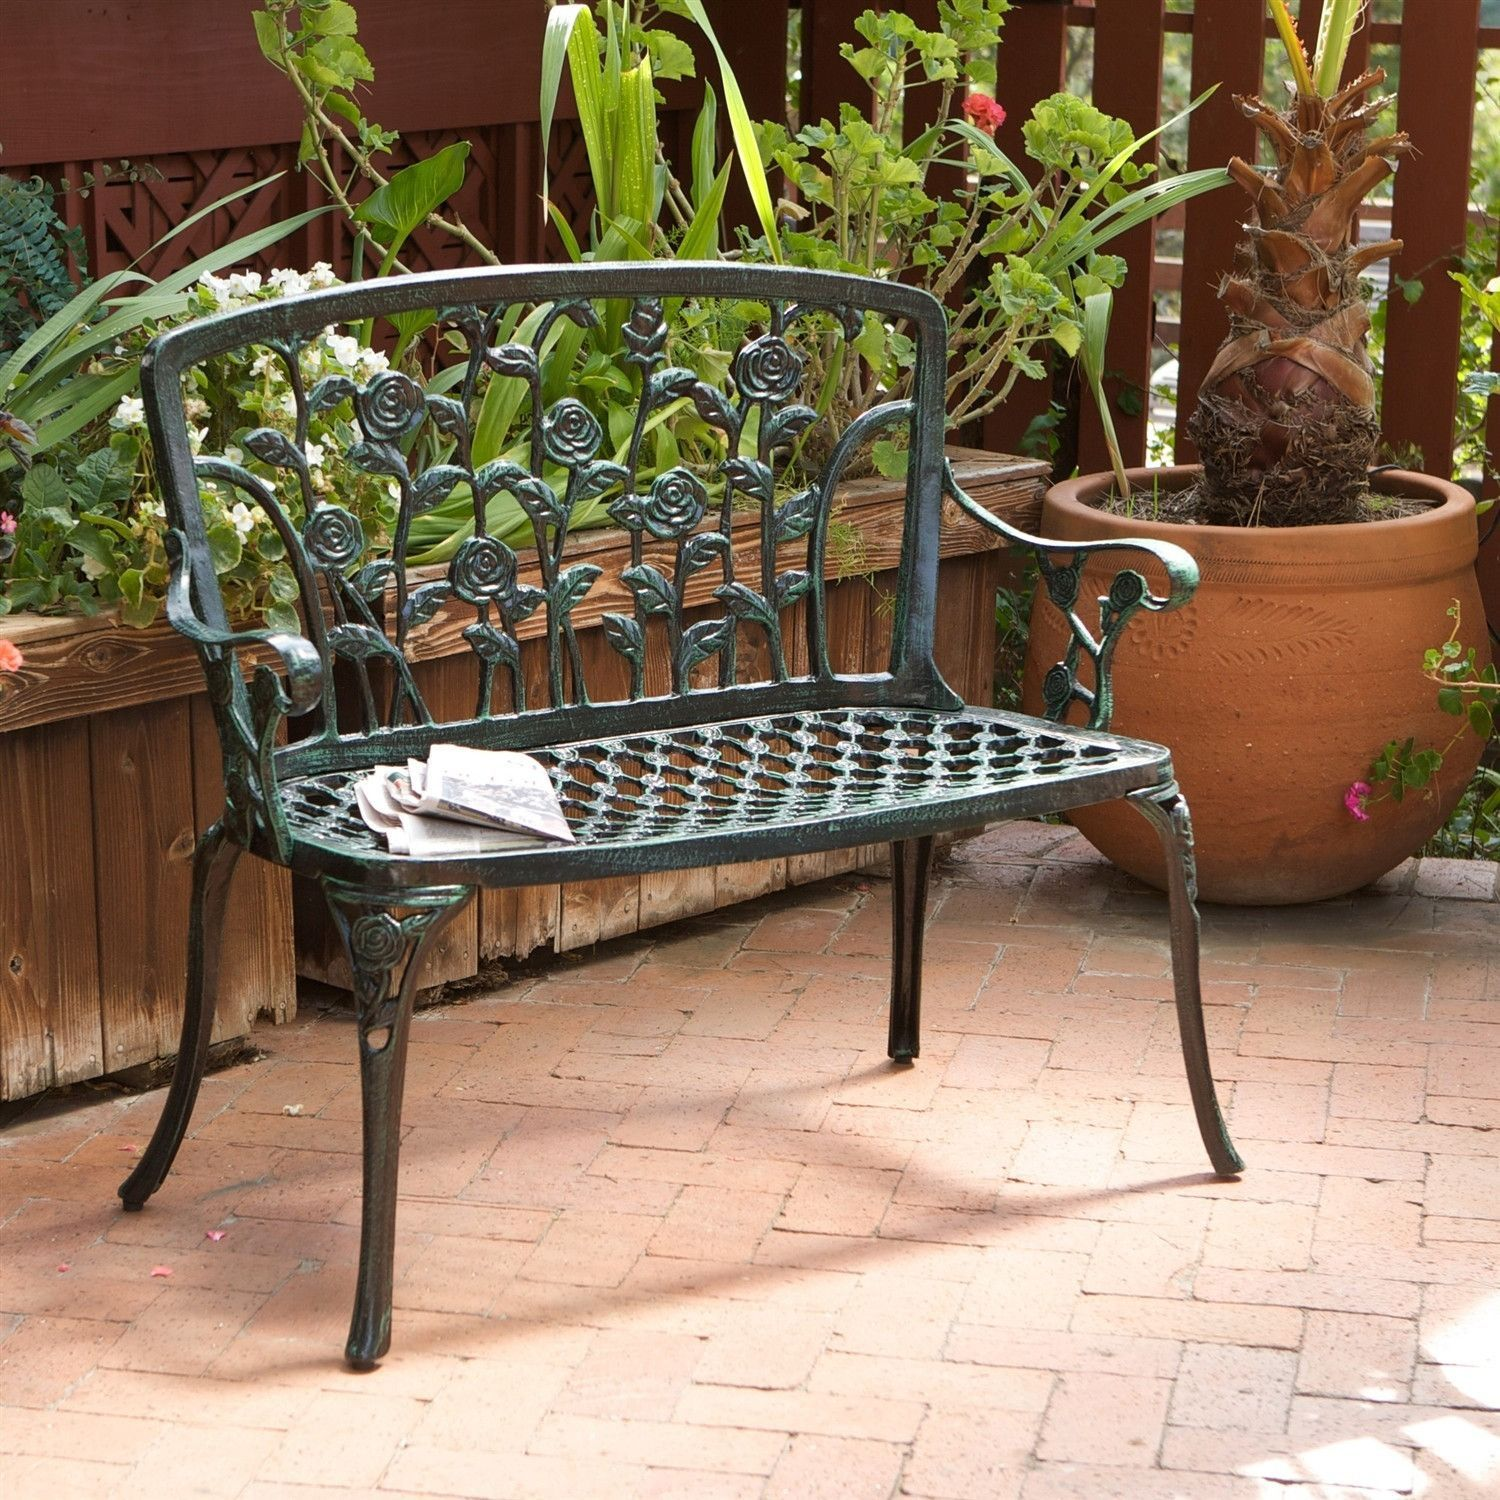 Fascinating Cast Aluminum Outdoor Rose Metal Garden Bench In Green Finish  With Inspiring Cast Aluminum Outdoor Rose Metal Garden Bench In Green Finish With Nice Garden Flowers List And Pictures Also Langton Garden Centre In Addition Garden Design Pictures And Youtube Vegetable Gardening Videos As Well As Aluminium Garden Furniture Sets Additionally Garden With Bricks From Pinterestcom With   Nice Cast Aluminum Outdoor Rose Metal Garden Bench In Green Finish  With Fascinating Youtube Vegetable Gardening Videos As Well As Aluminium Garden Furniture Sets Additionally Garden With Bricks And Inspiring Cast Aluminum Outdoor Rose Metal Garden Bench In Green Finish Via Pinterestcom